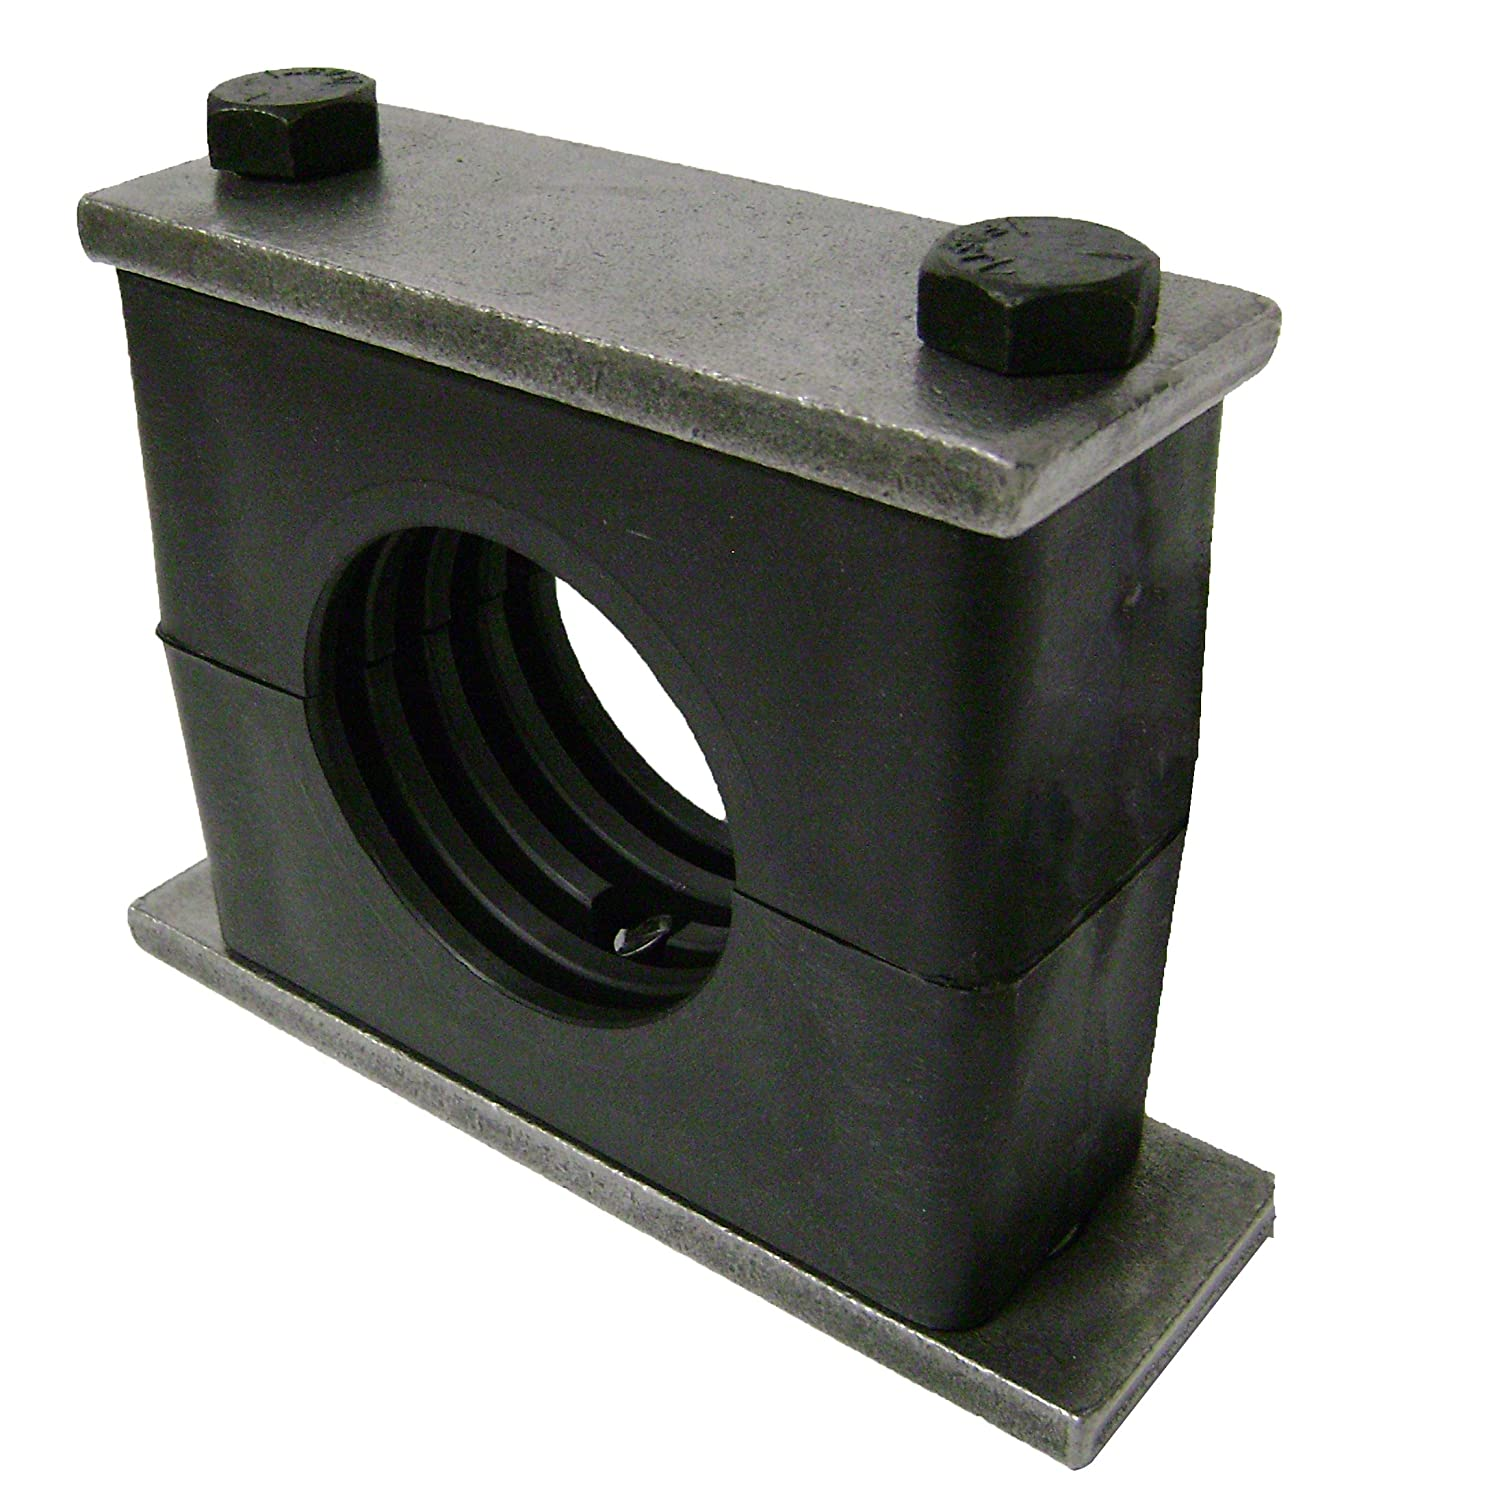 1-1//2 Pipe Size Polypropylene with Plain Carbon Steel Hardware Behringer Heavy Series Pipe Clamp Weld Mounting